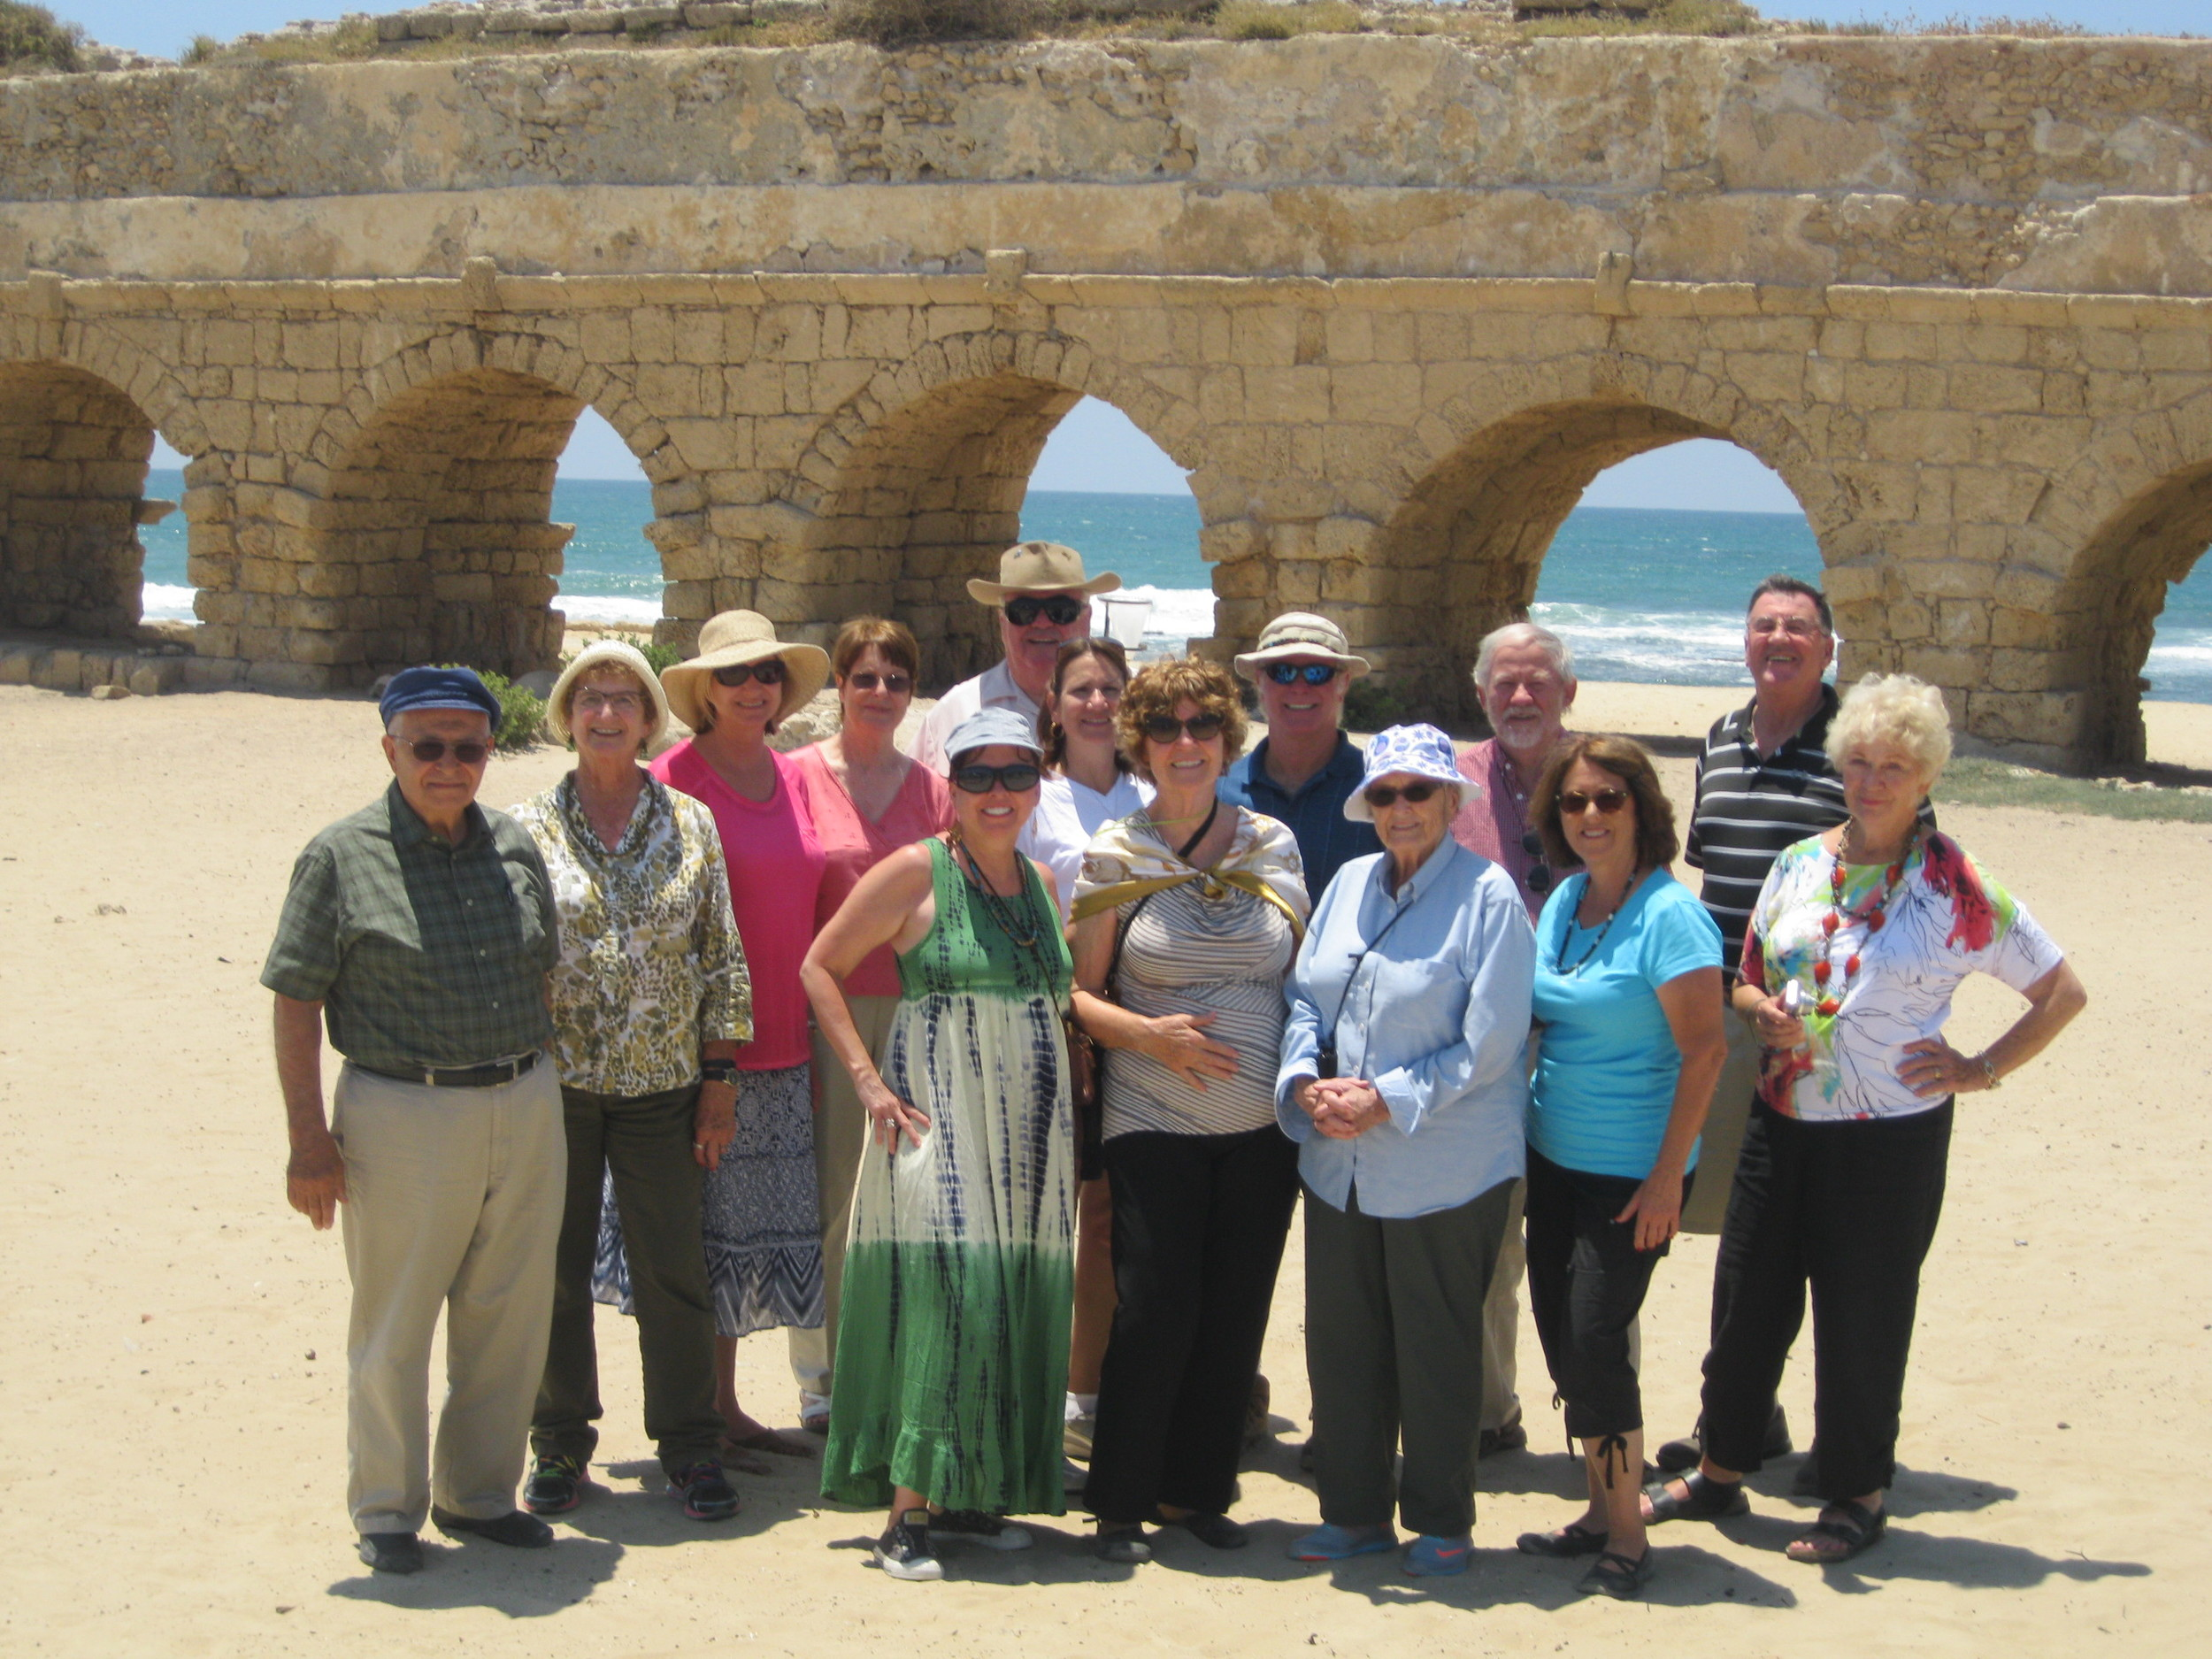 Group photo at Caesarea by the Sea Aquaduct